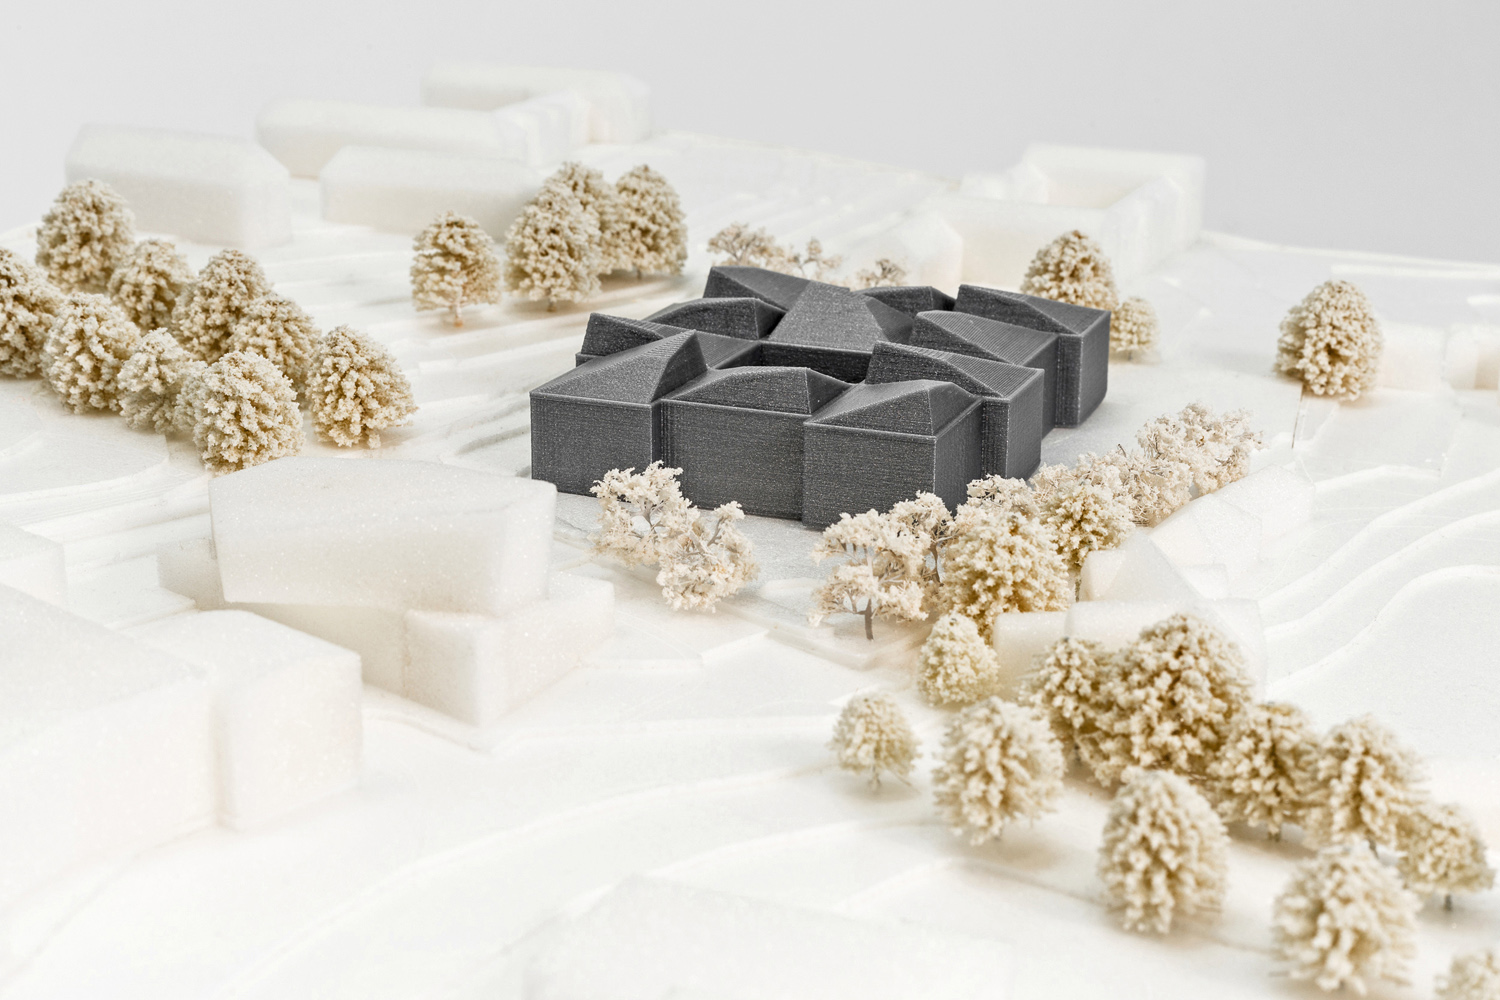 Concept Model III FaulknerBrowns Architects}